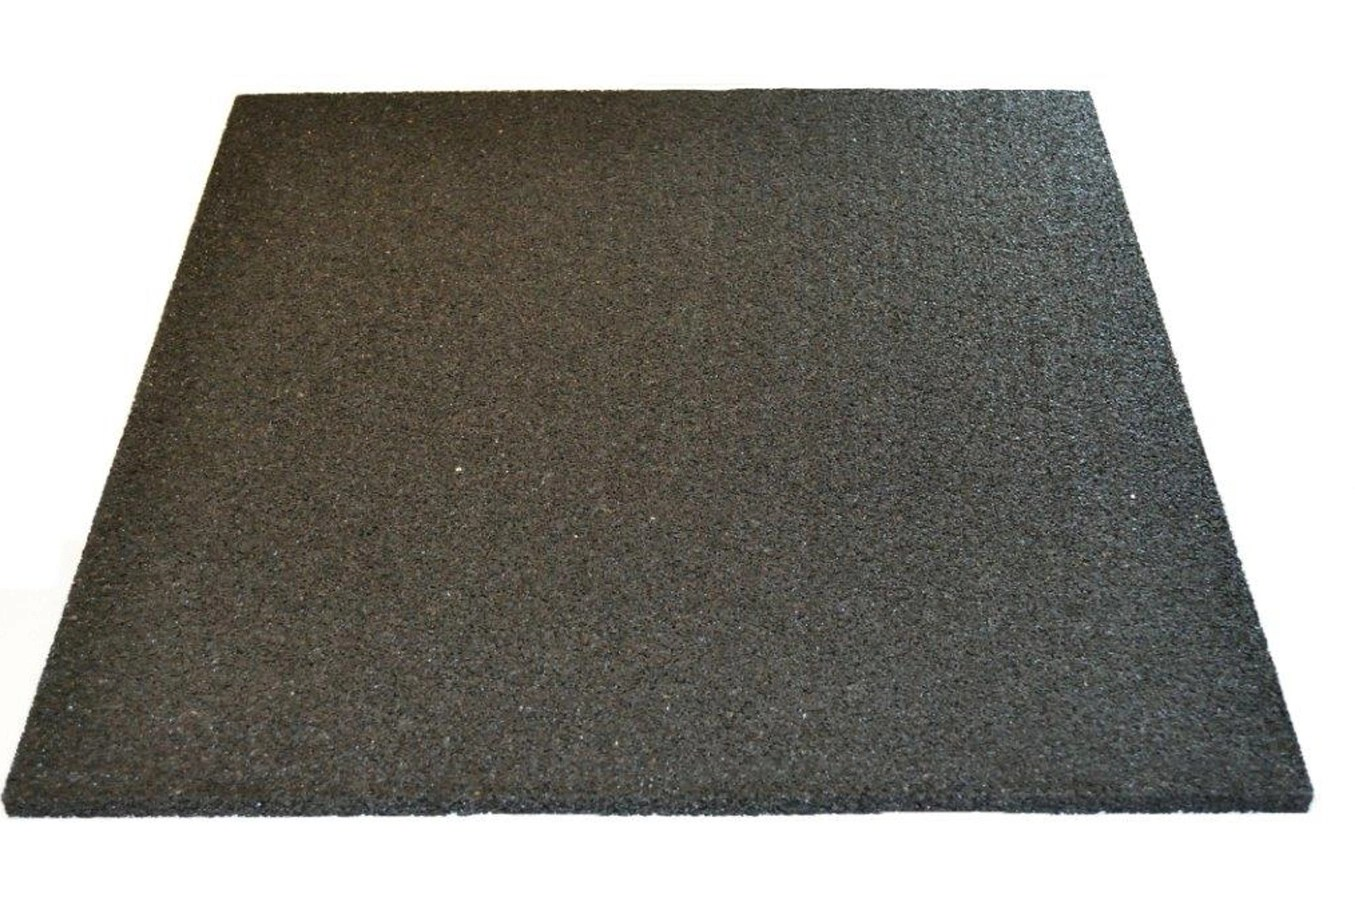 Dalle Anti Vibration Bricoman Tapis Anti Bruit Courroie De Transport